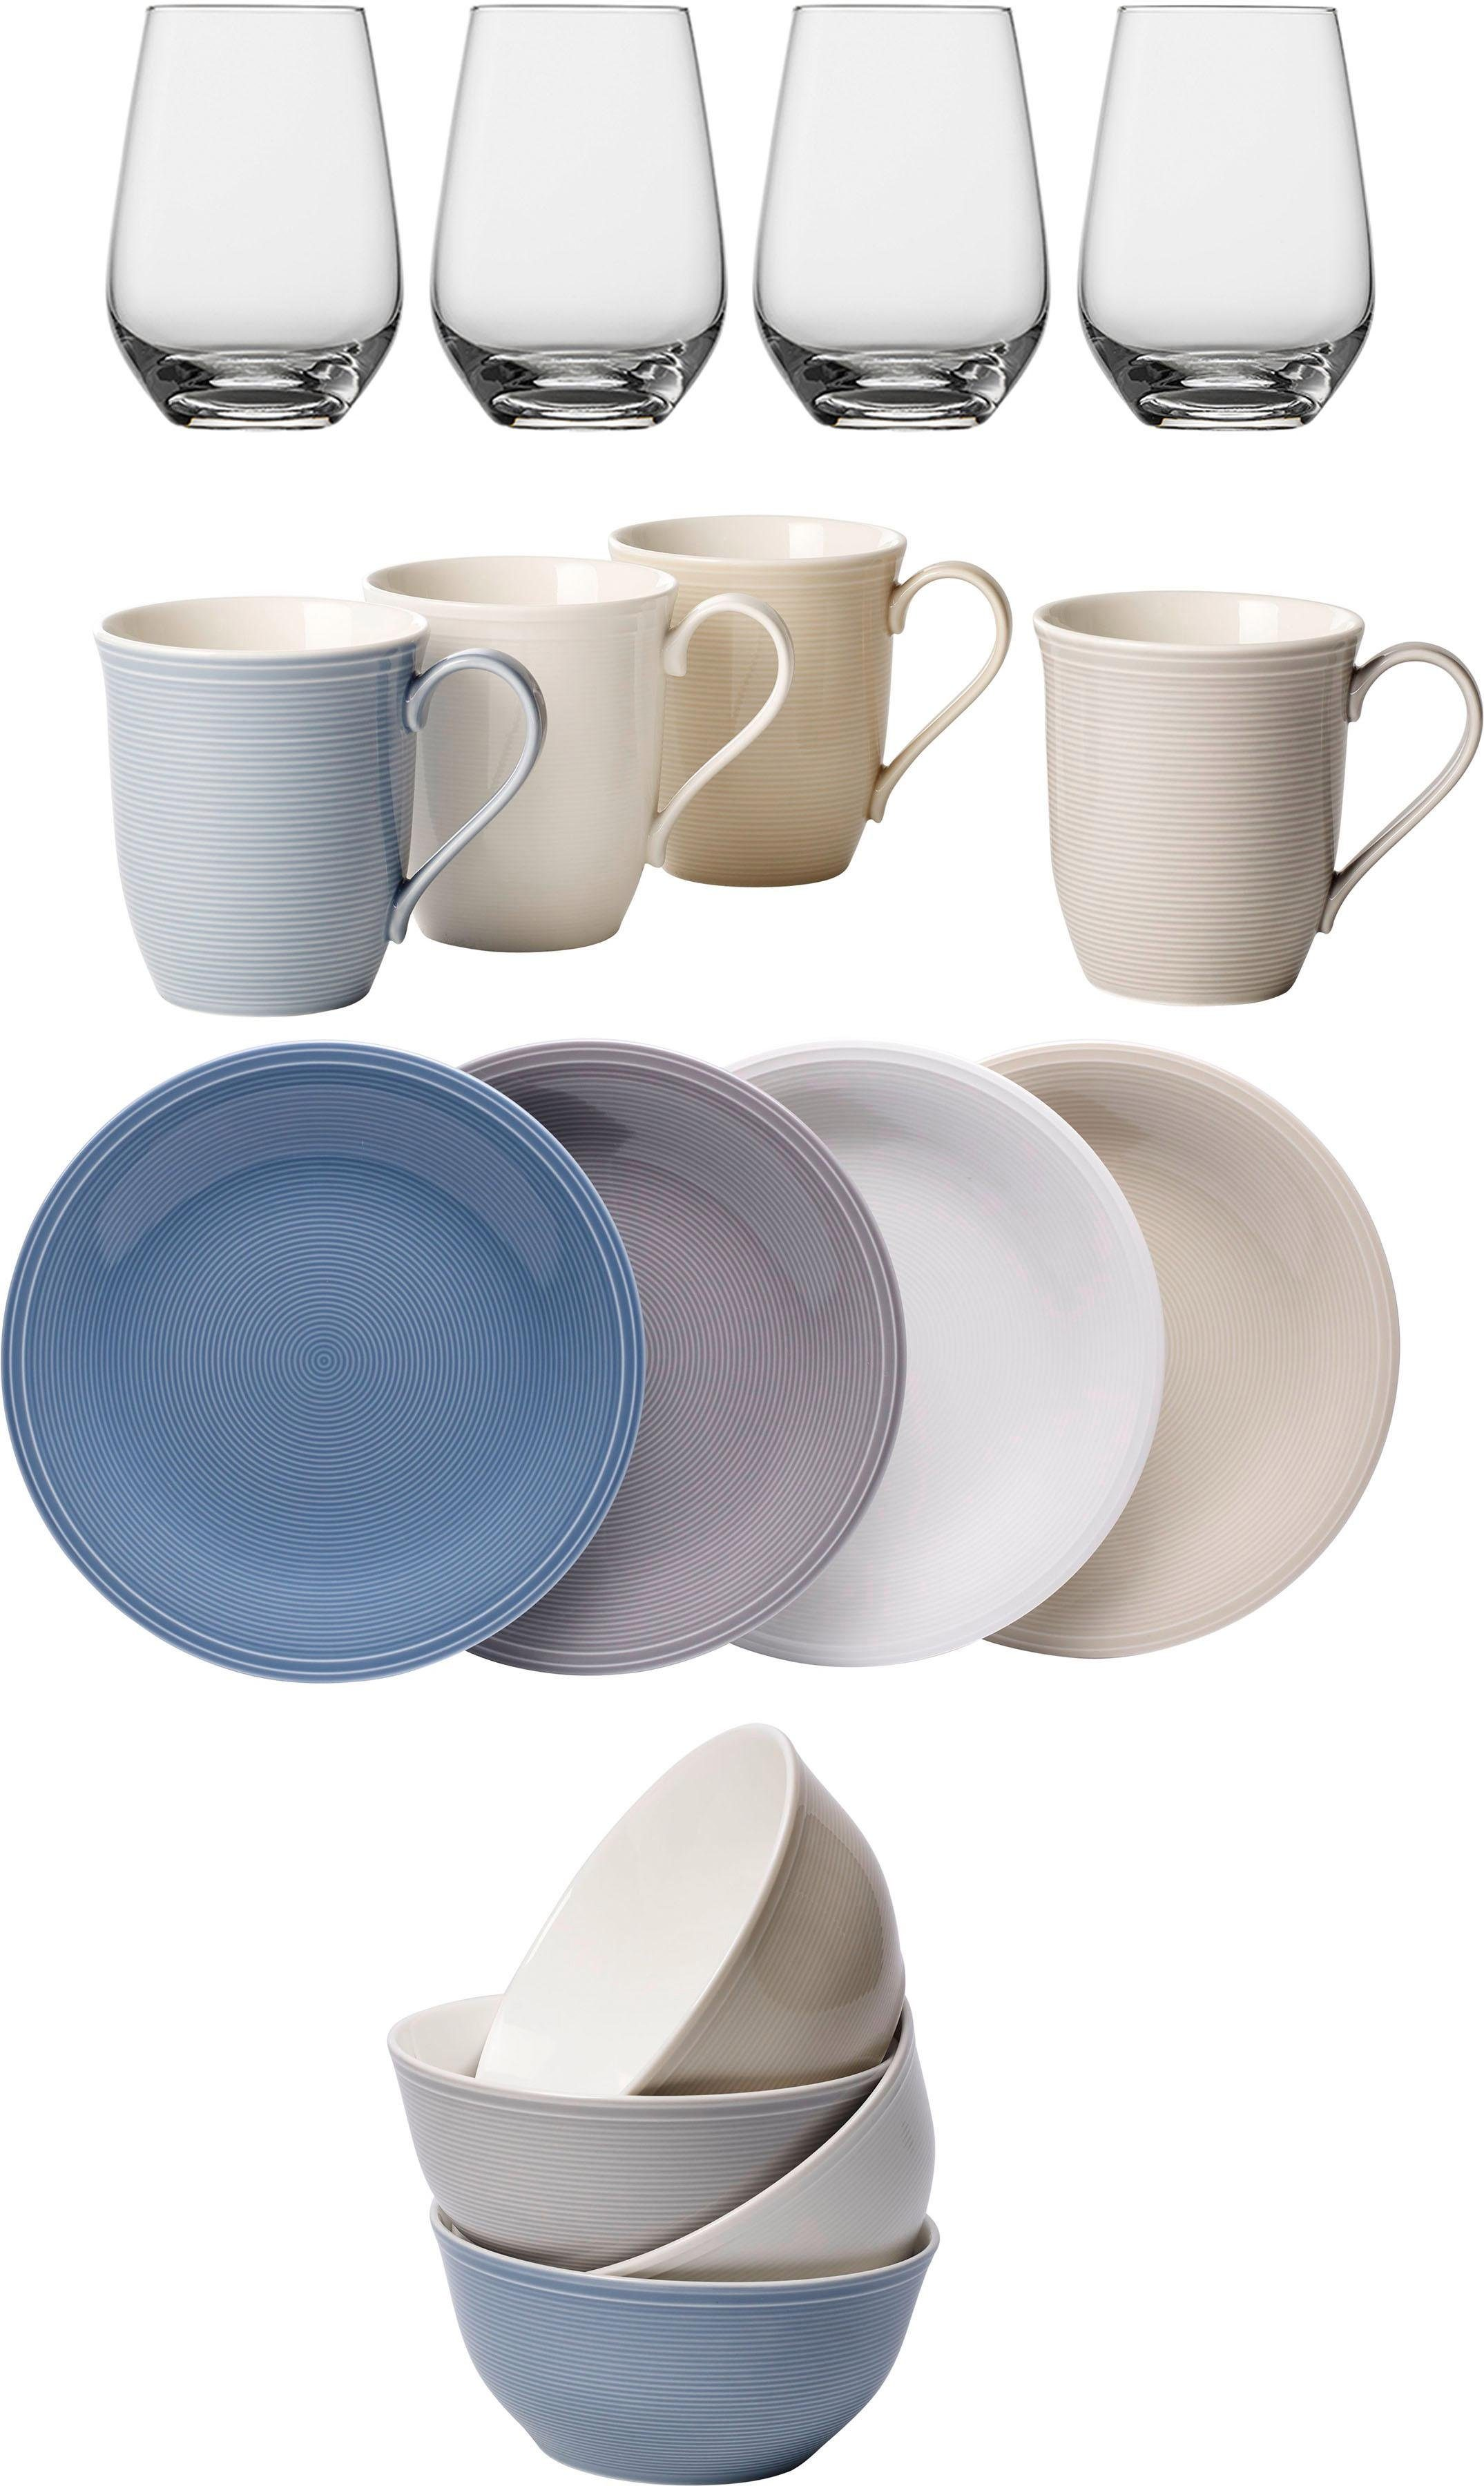 Geschirr Spülmaschinenfest Vivo Villeroy & Boch Group Kombiservice »color Loop« (16